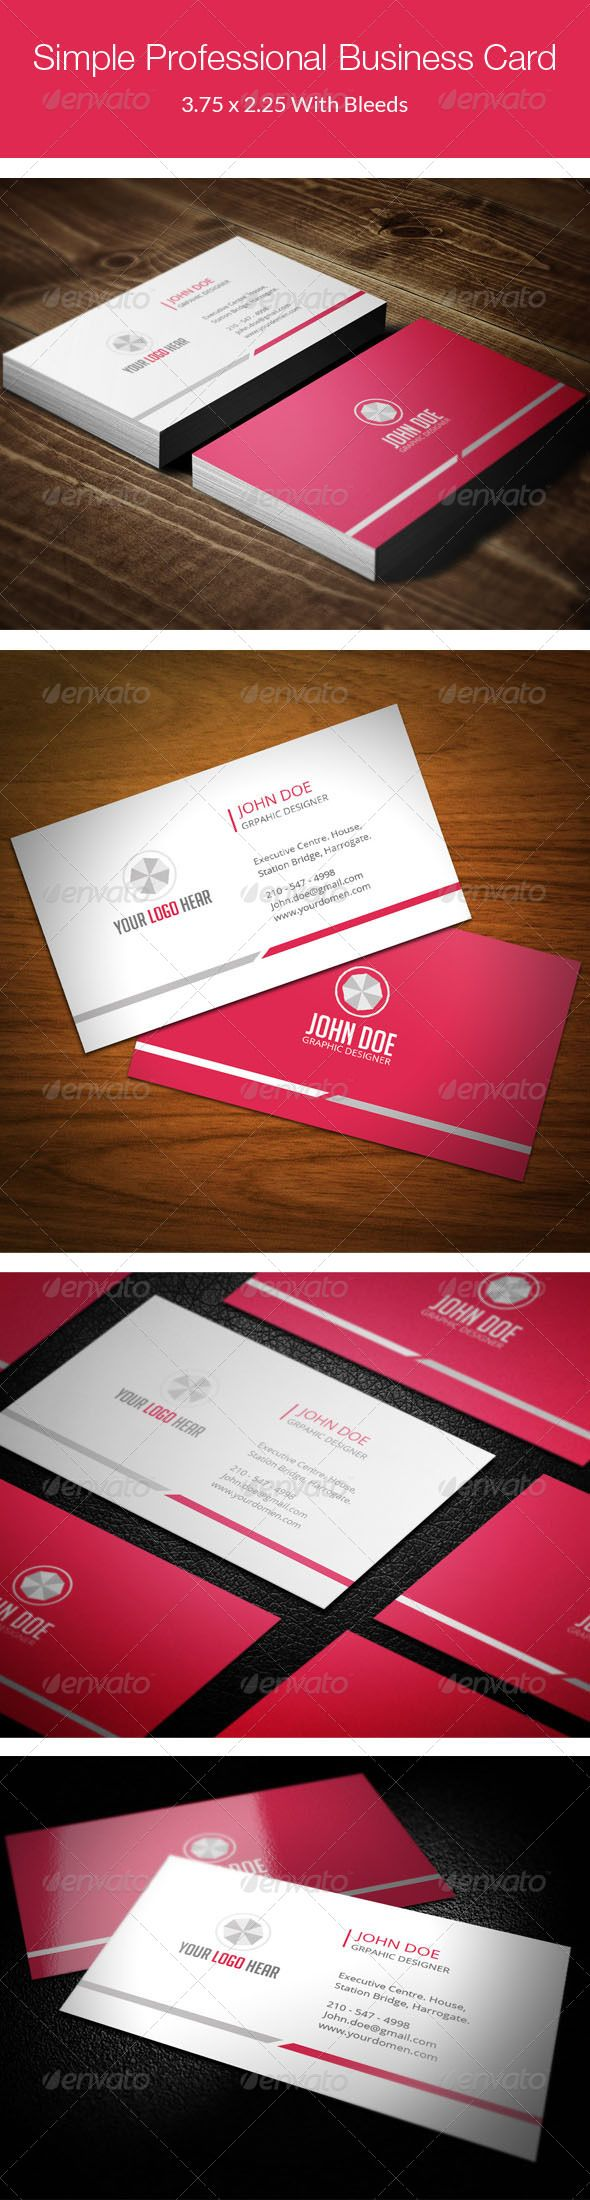 Simple Professional Business Card - 77   Business cards, Minimal ...